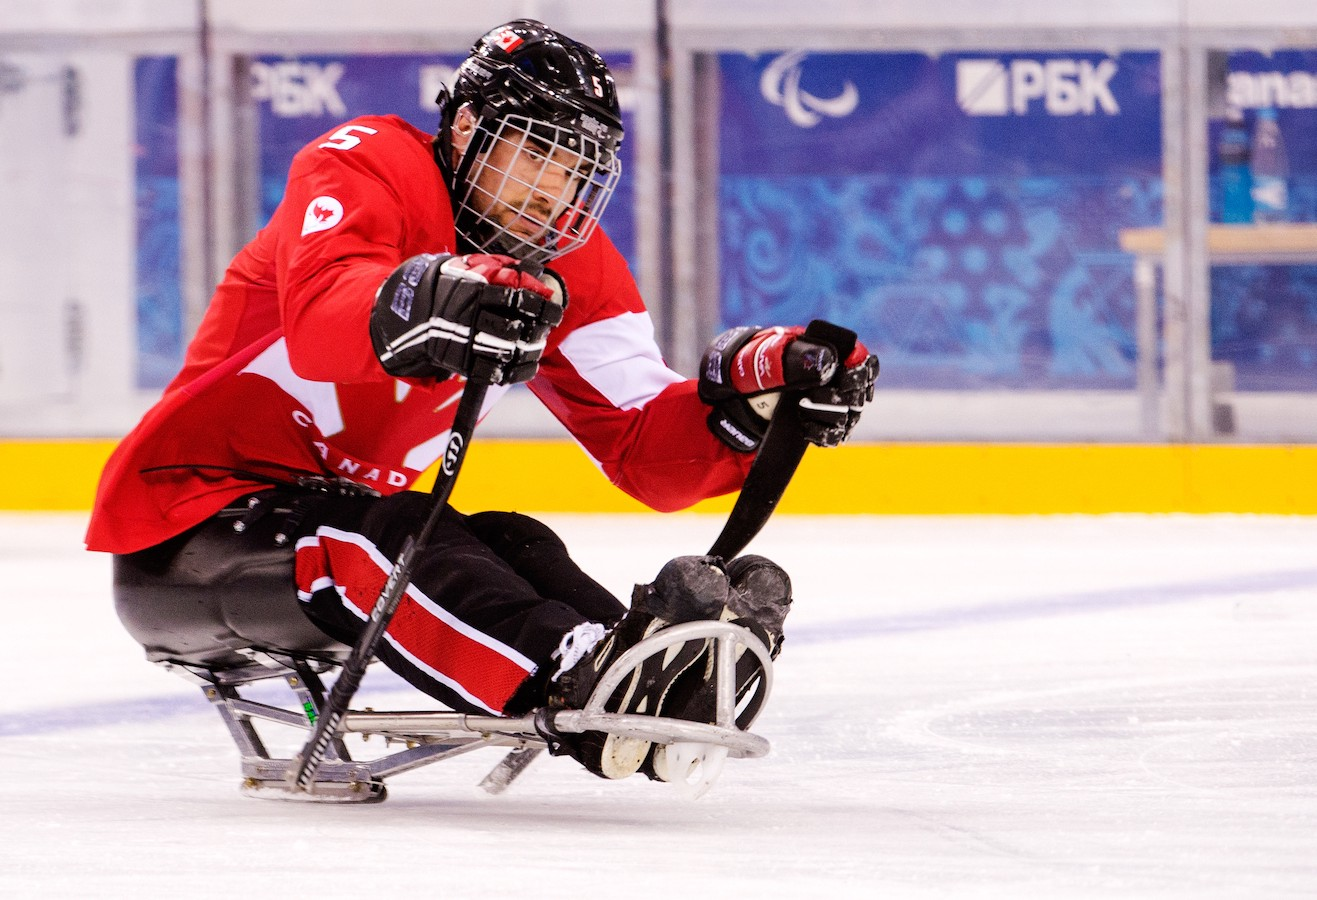 Playing in the 2014 Sochi Paralympics.